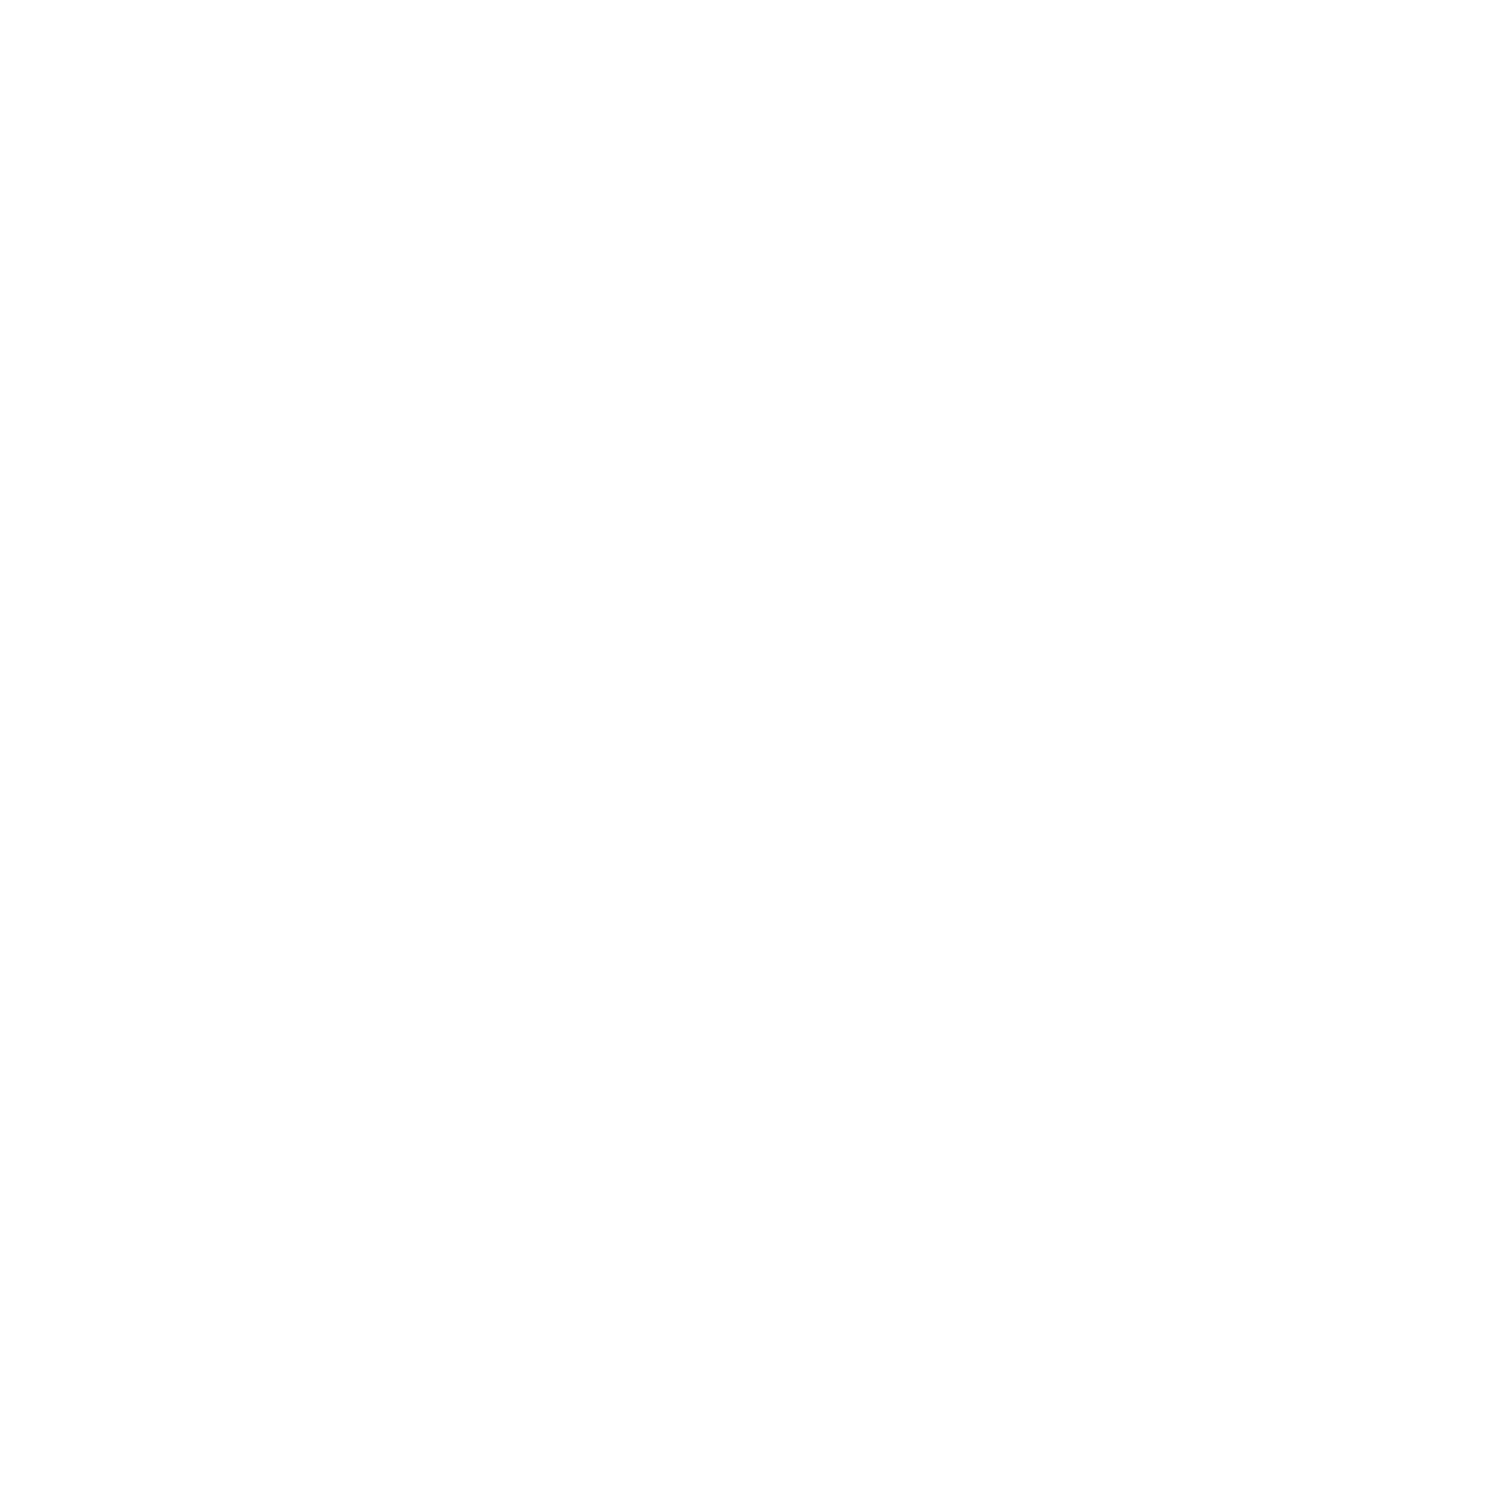 Vanished Valley Brewing Company